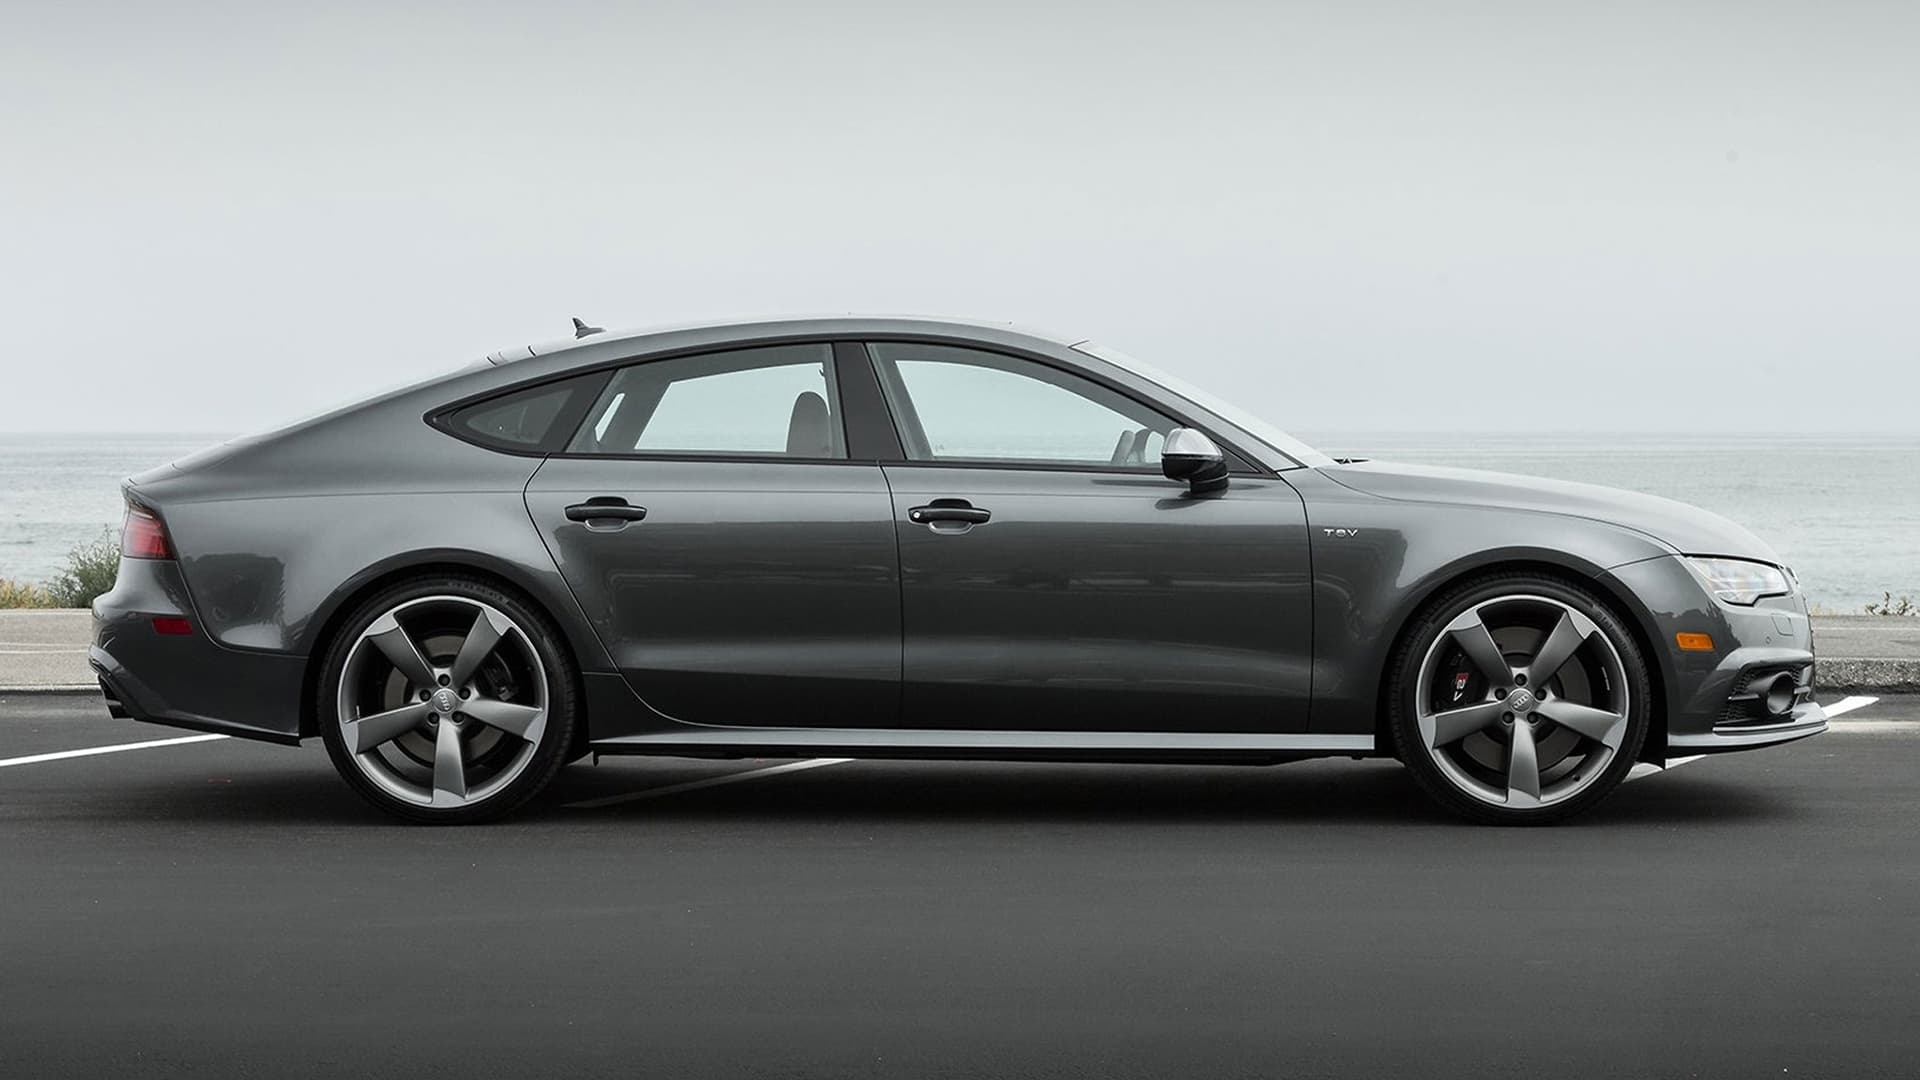 Audi A6 Wallpaper Hd 2016 Audi Rs7 Wallpapers Hd High Quality Resolution Download